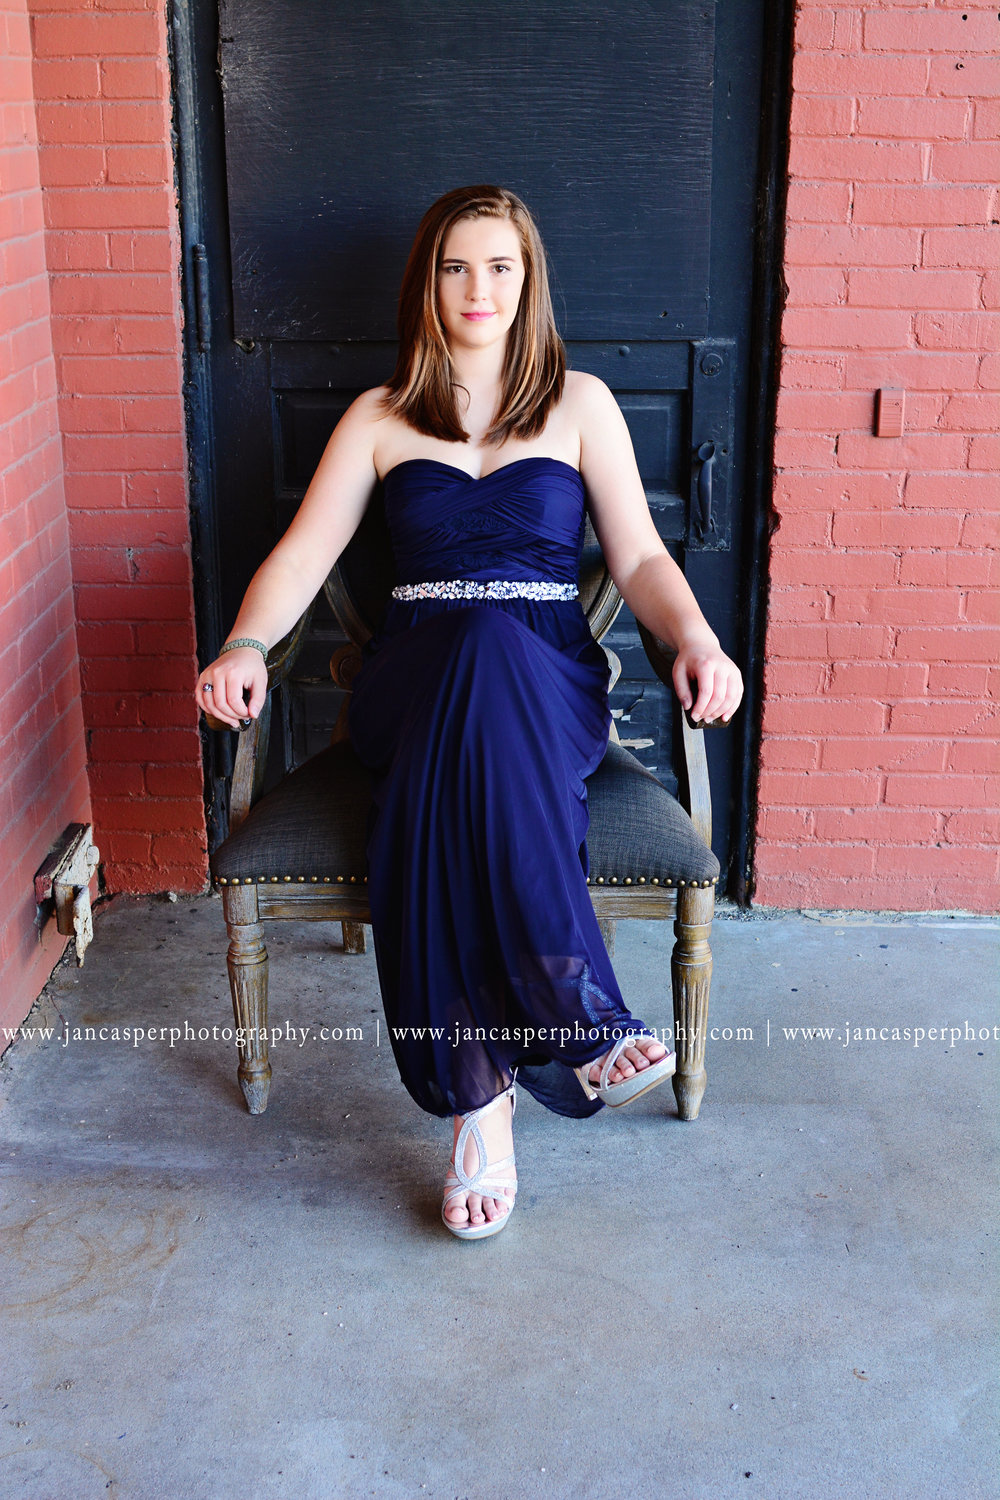 senior portrait prom dress Norfolk Jan Casper Photography